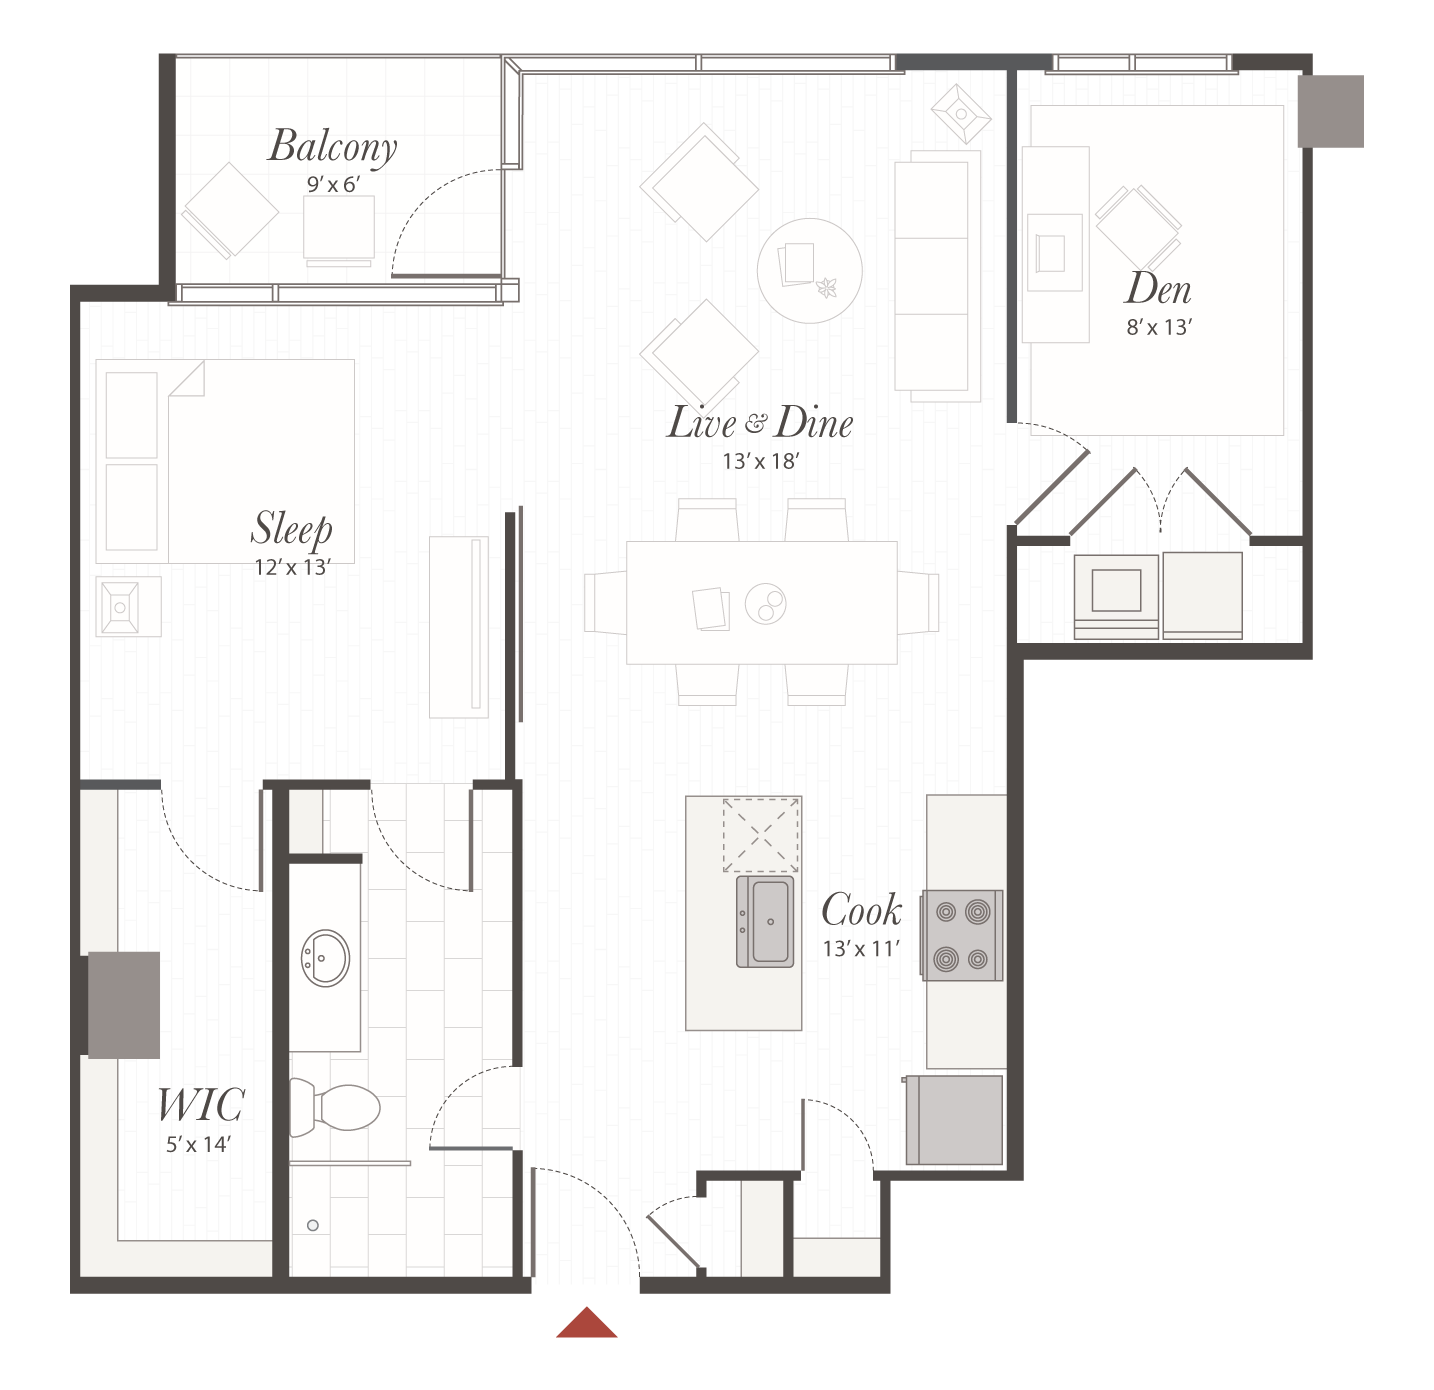 B5 floor plan 1 bedroom with den apartment cincinnati oh for Apartment floor plans 1 bedroom with den